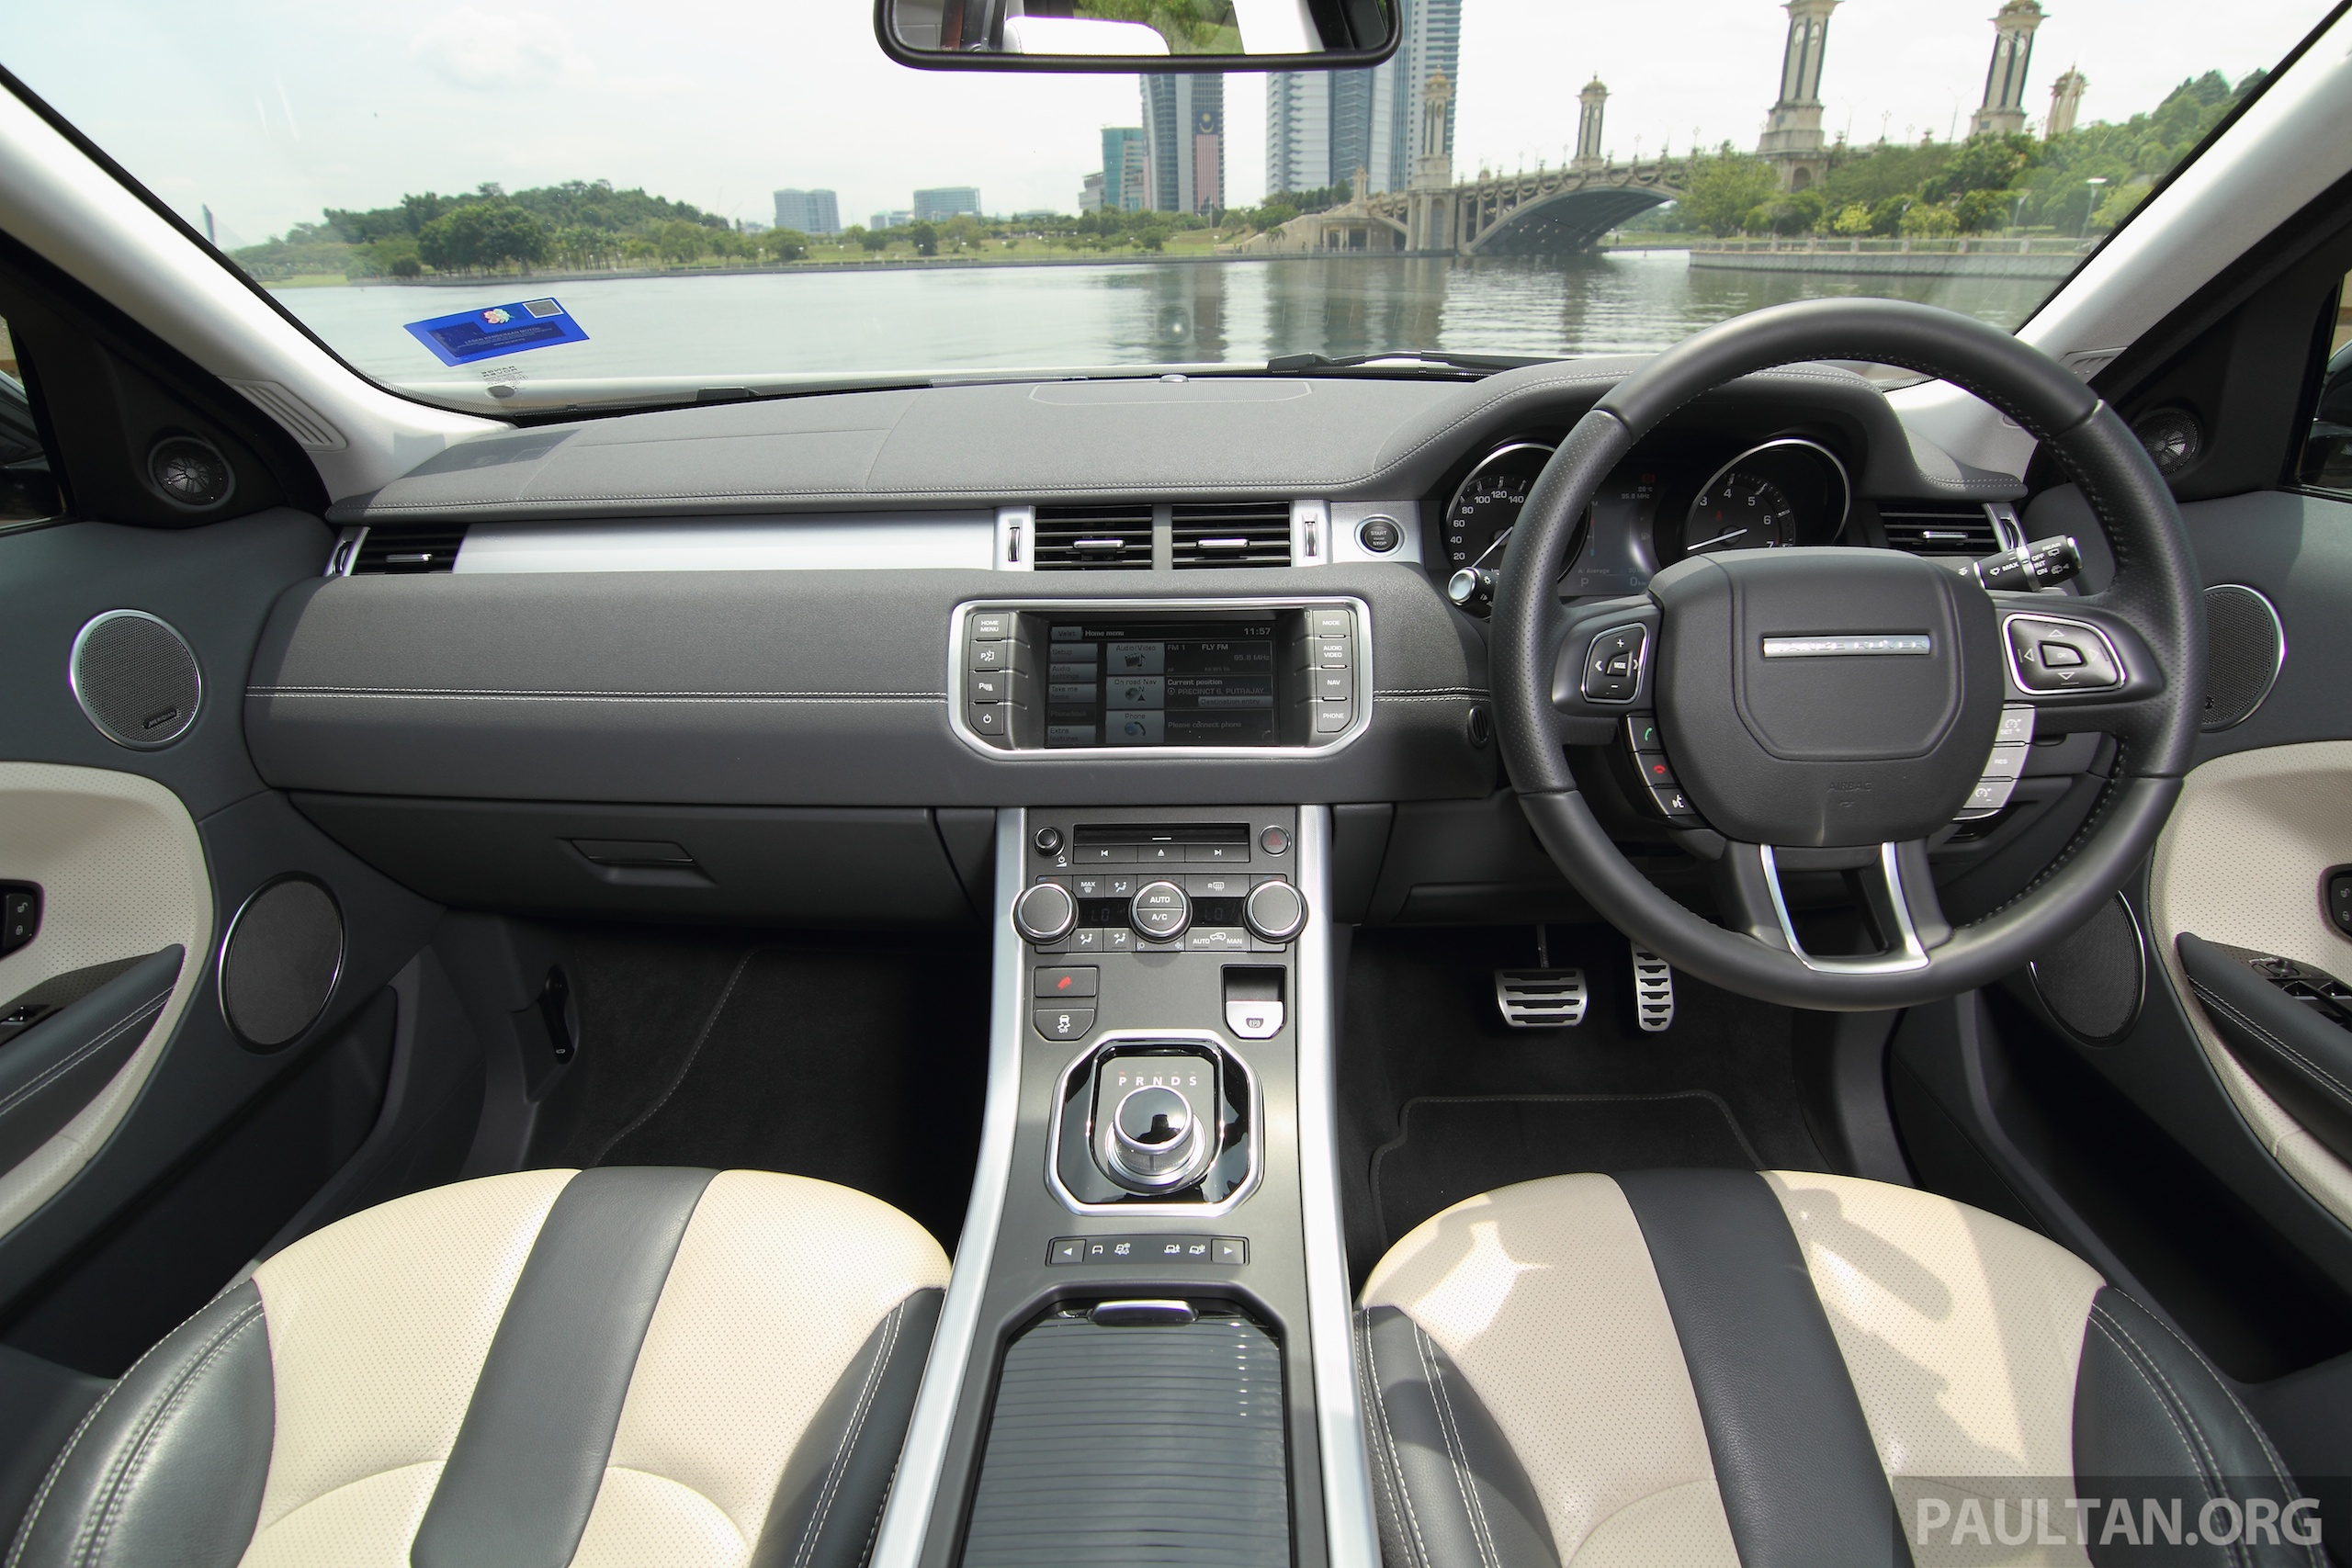 2018 Range Rover Evoque >> Range Rover Evoque facelift teased with new LEDs Paul Tan - Image 311986